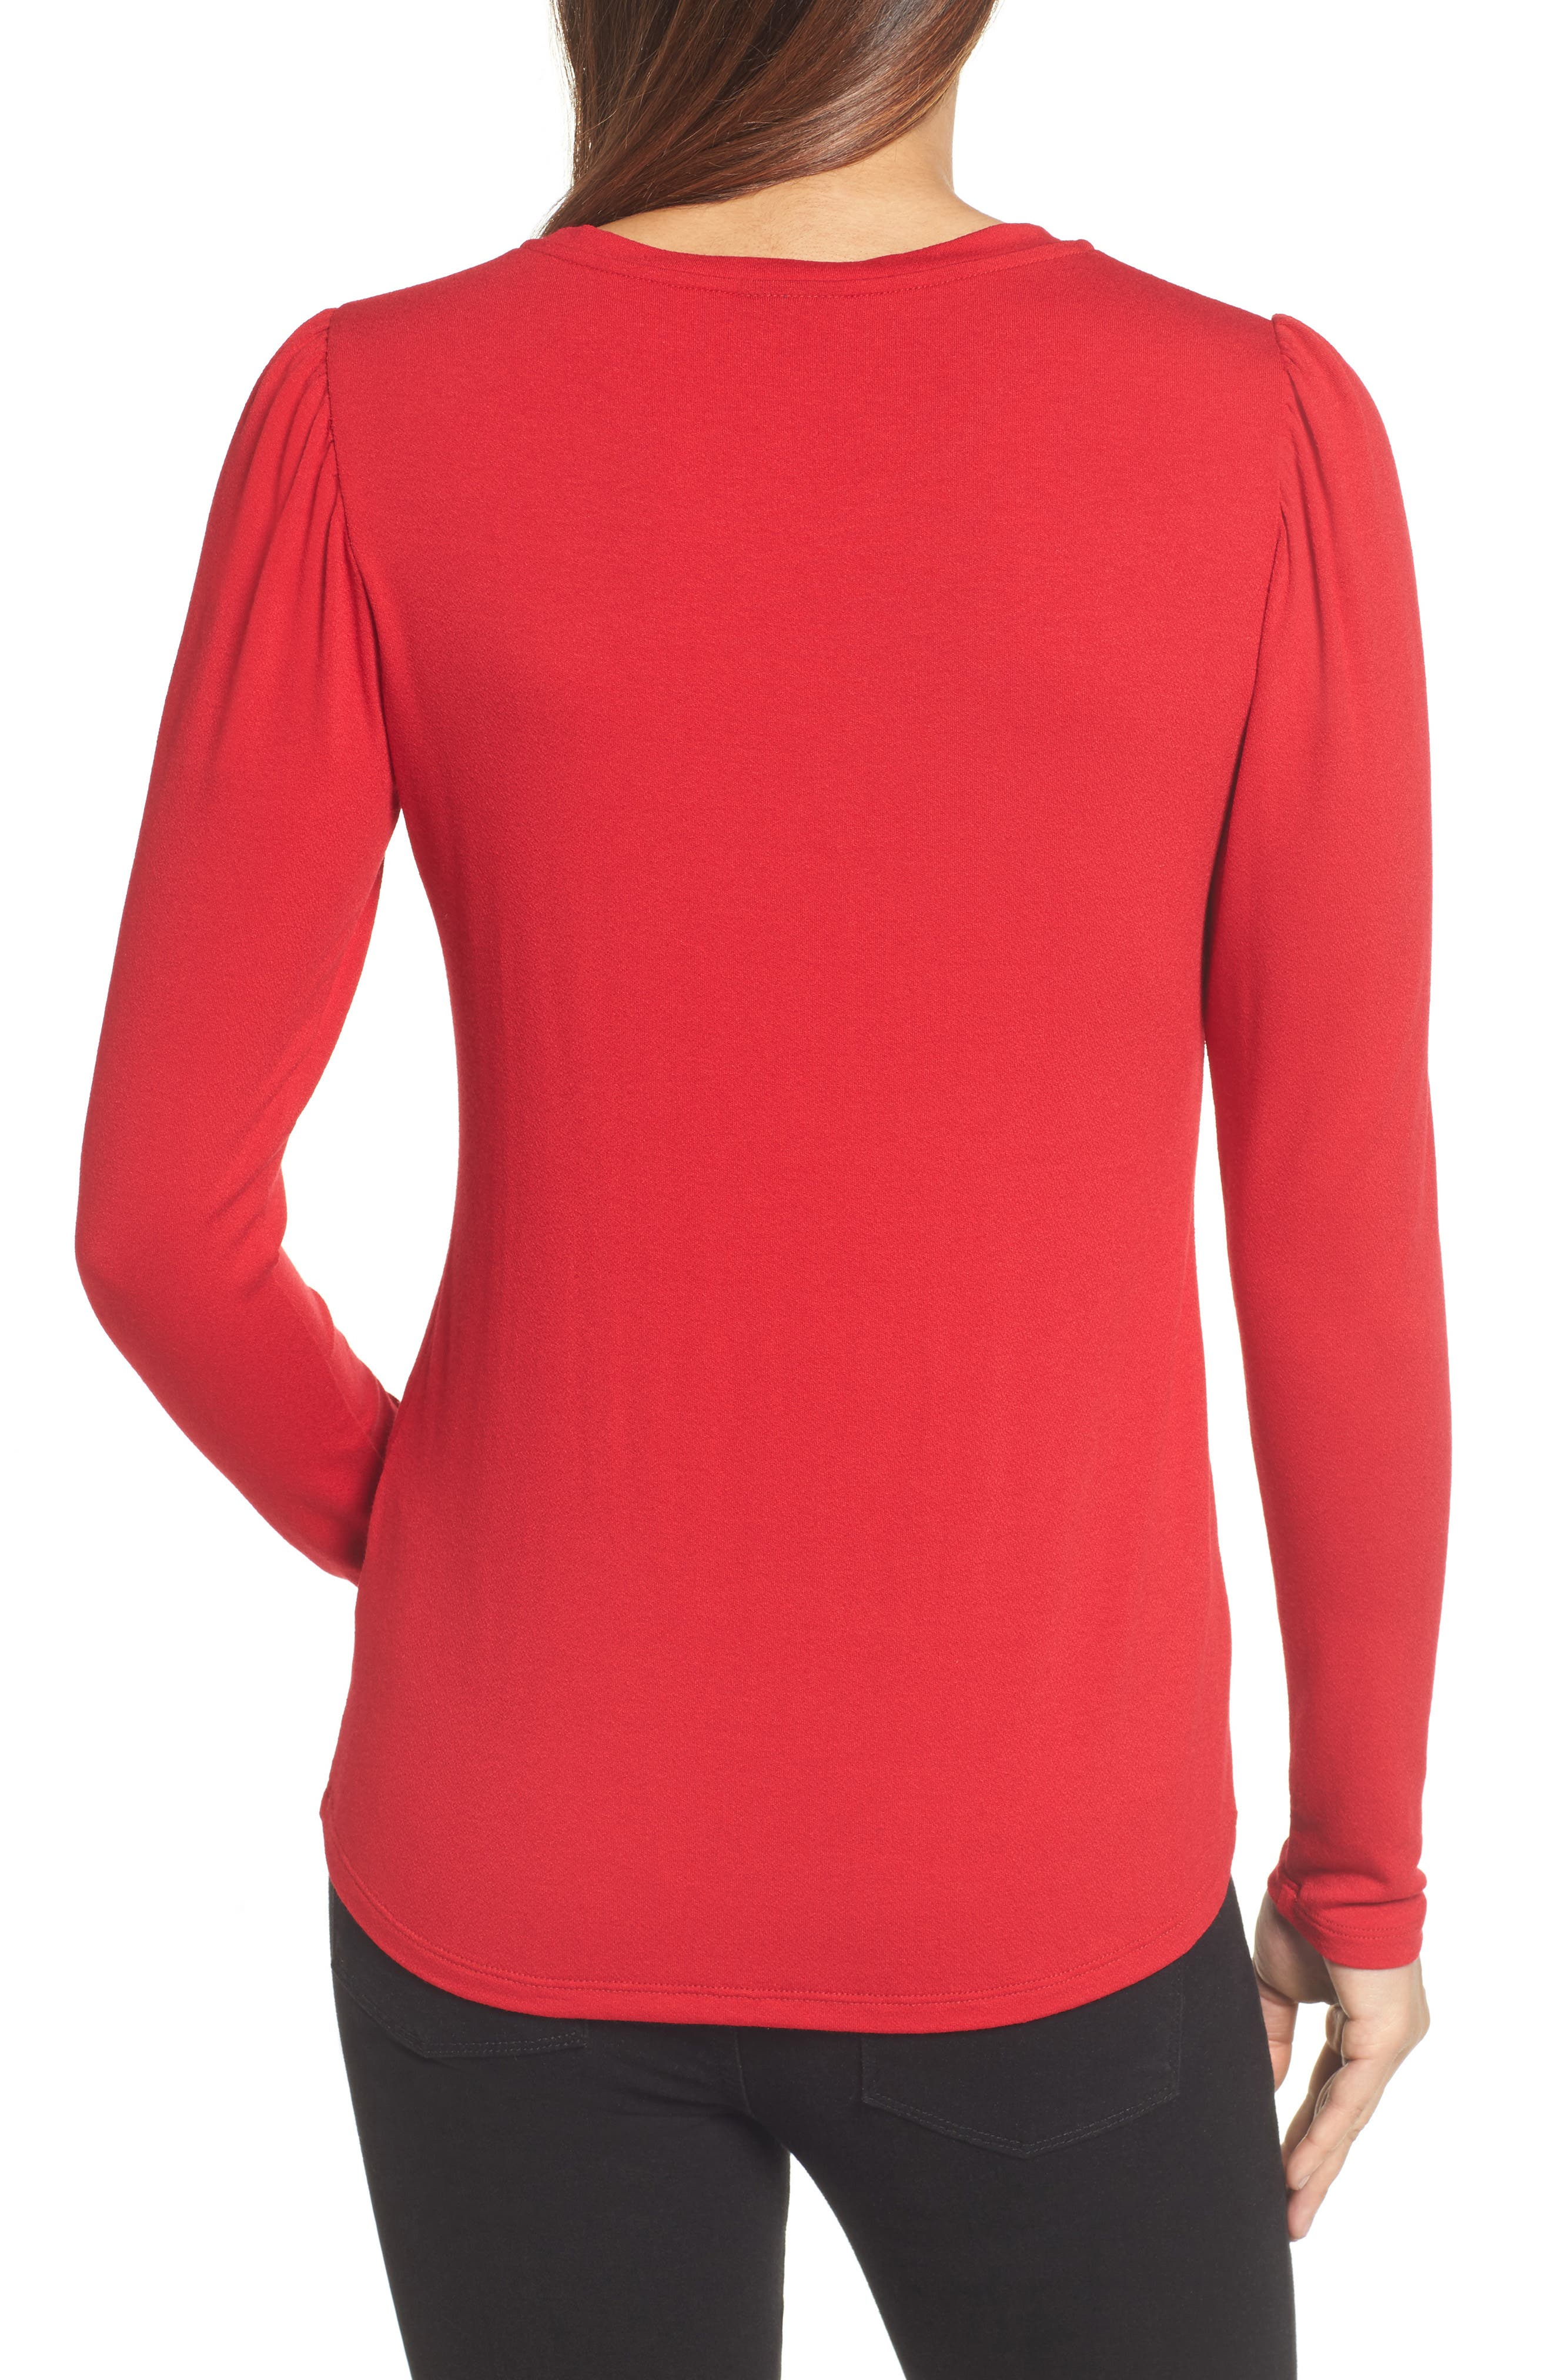 Bishop Knit Top,                             Alternate thumbnail 2, color,                             Red Chili